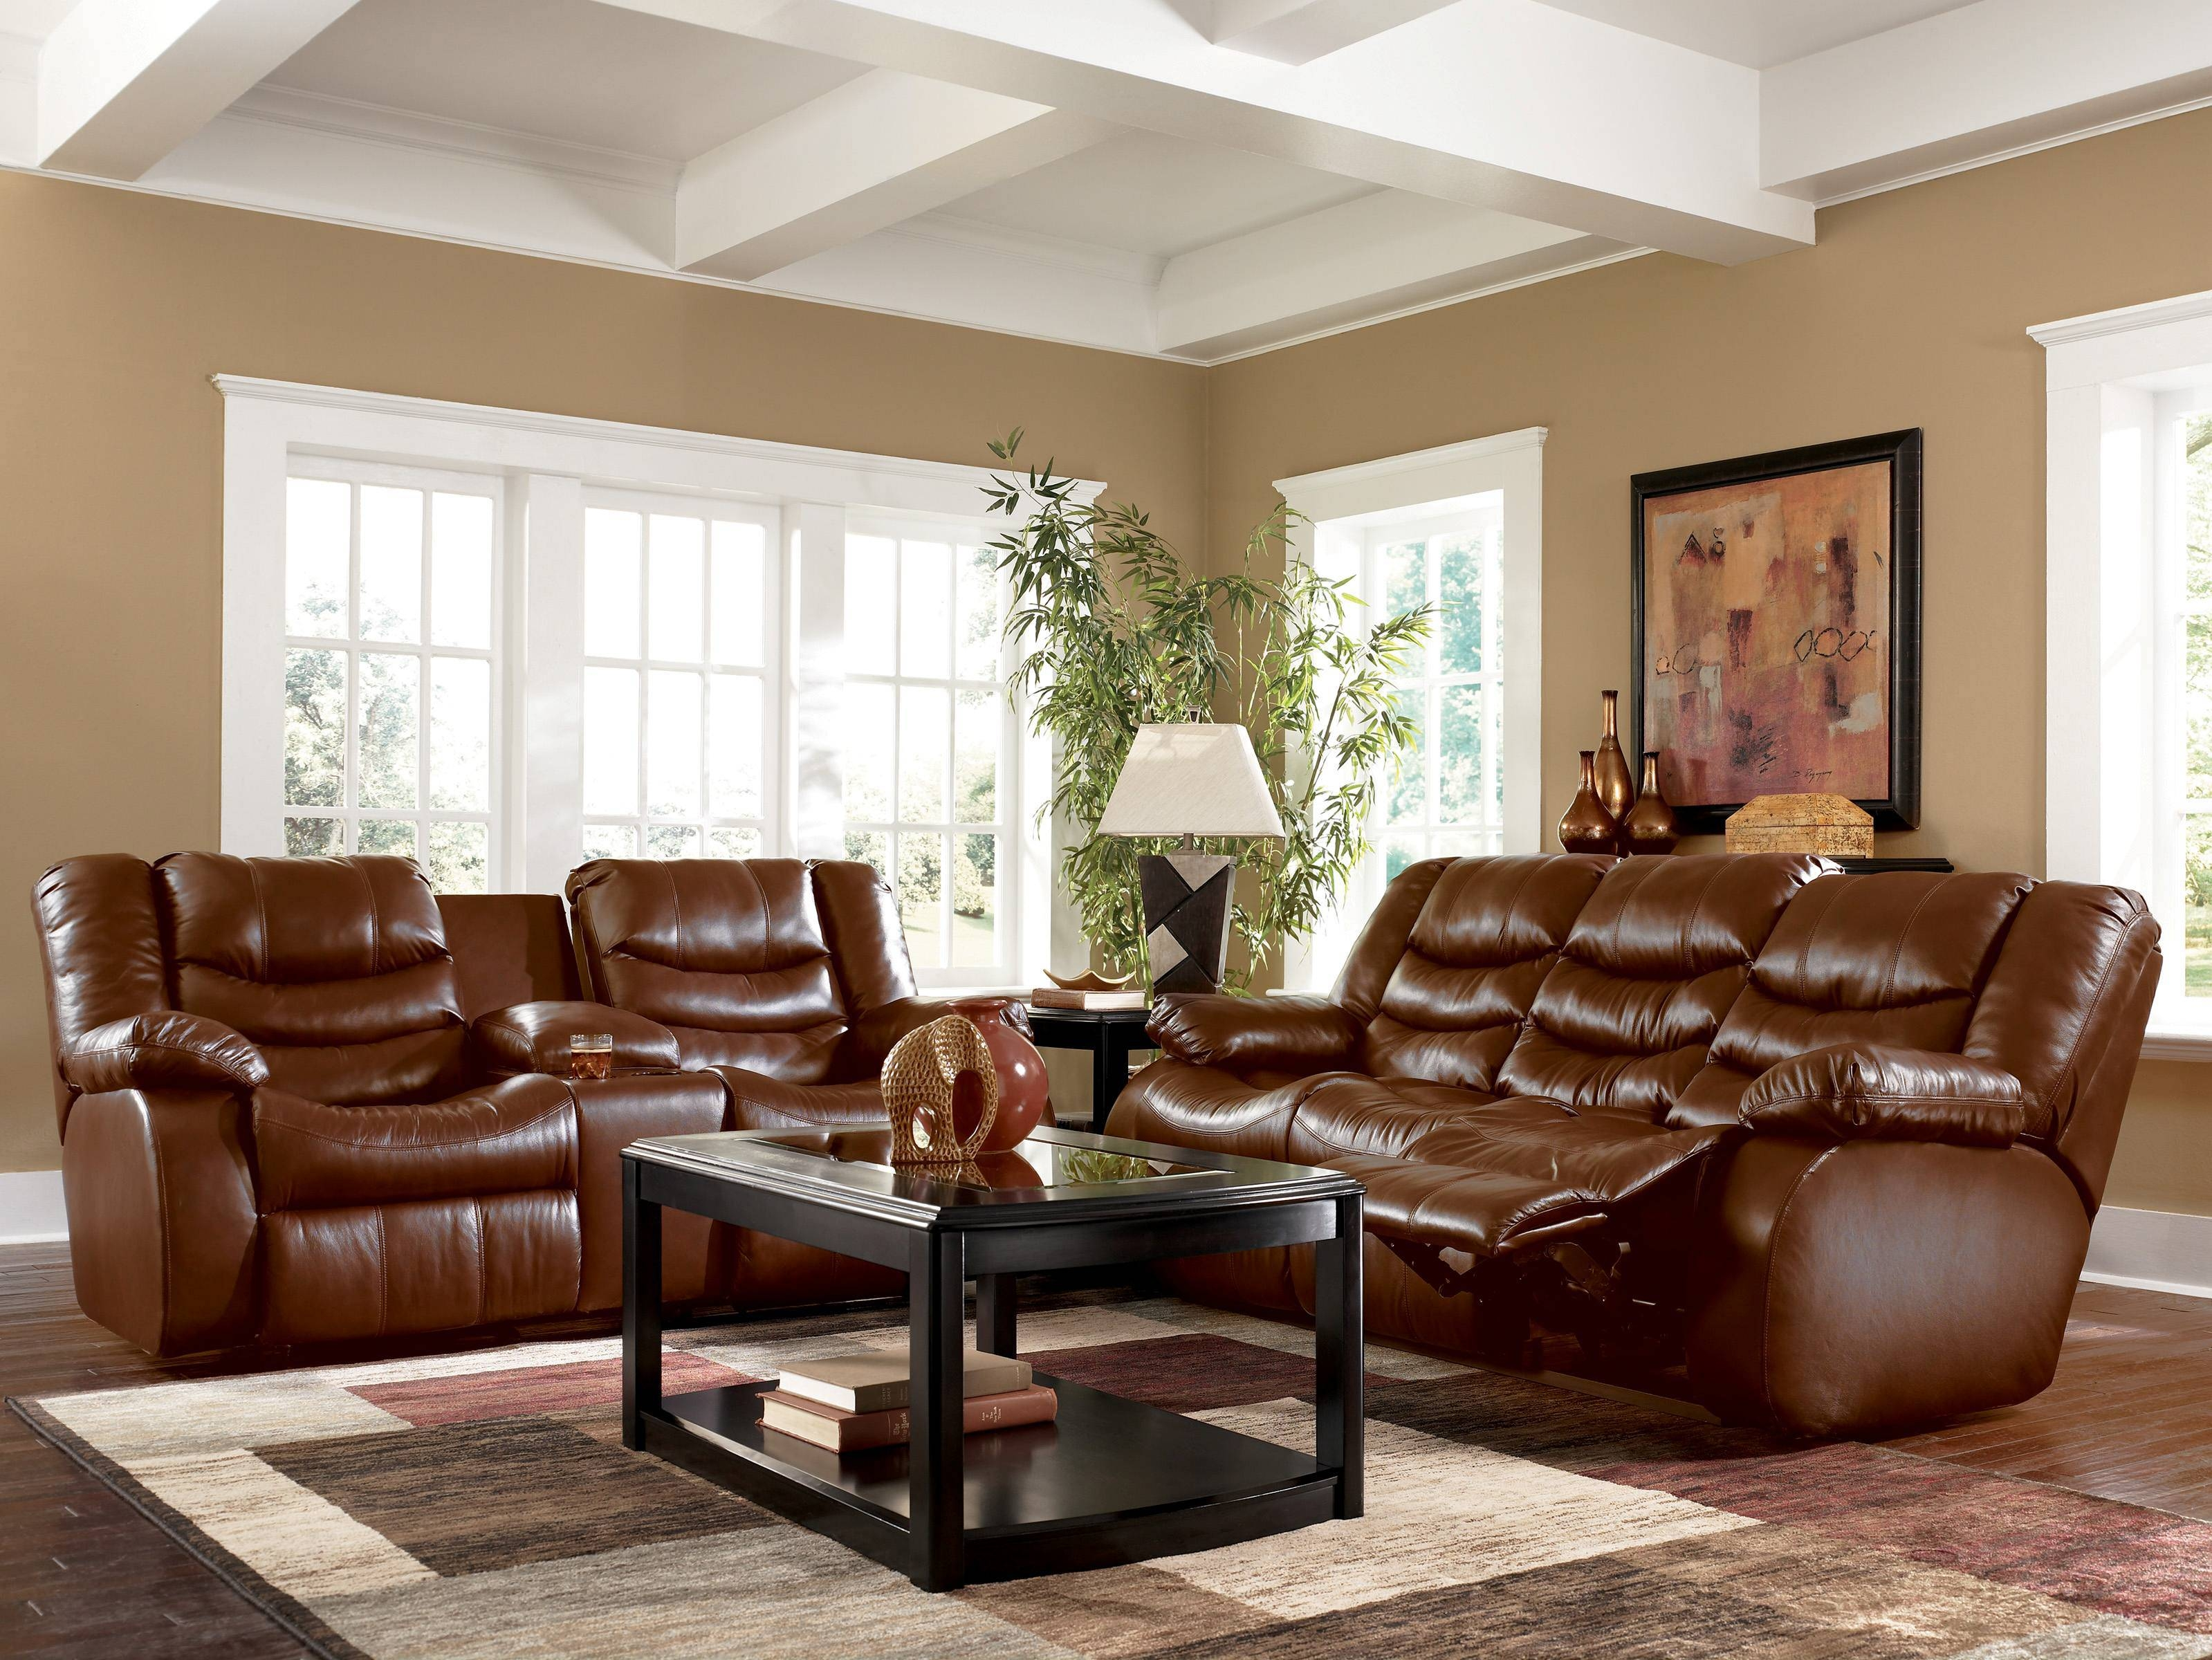 Leather Sofas Ideas - Home And Interior with Black Sofas for Living Room (Image 5 of 15)